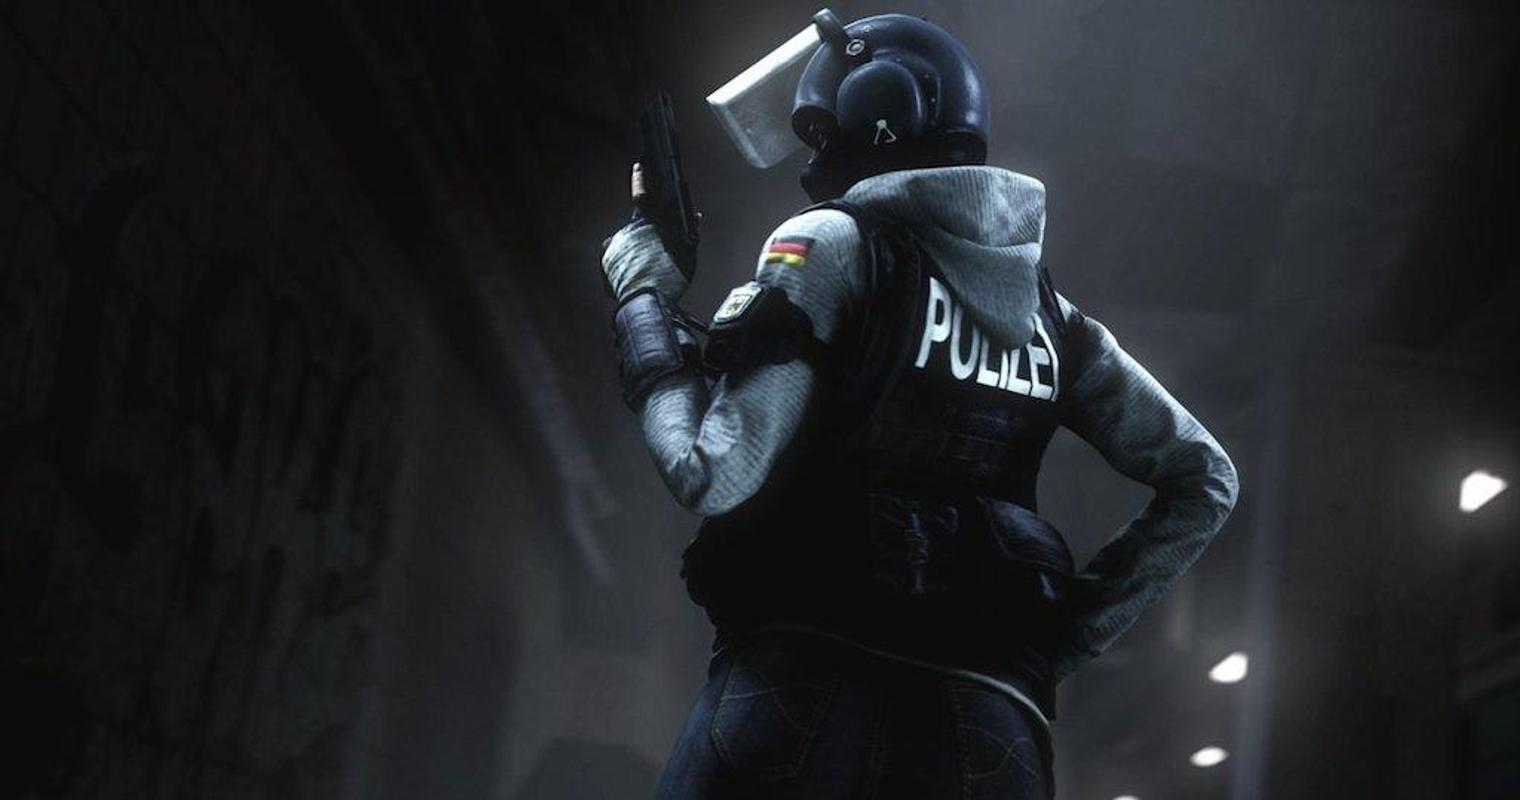 Rainbow six siege wallpaper for android apk download - Rainbow six siege phone ...